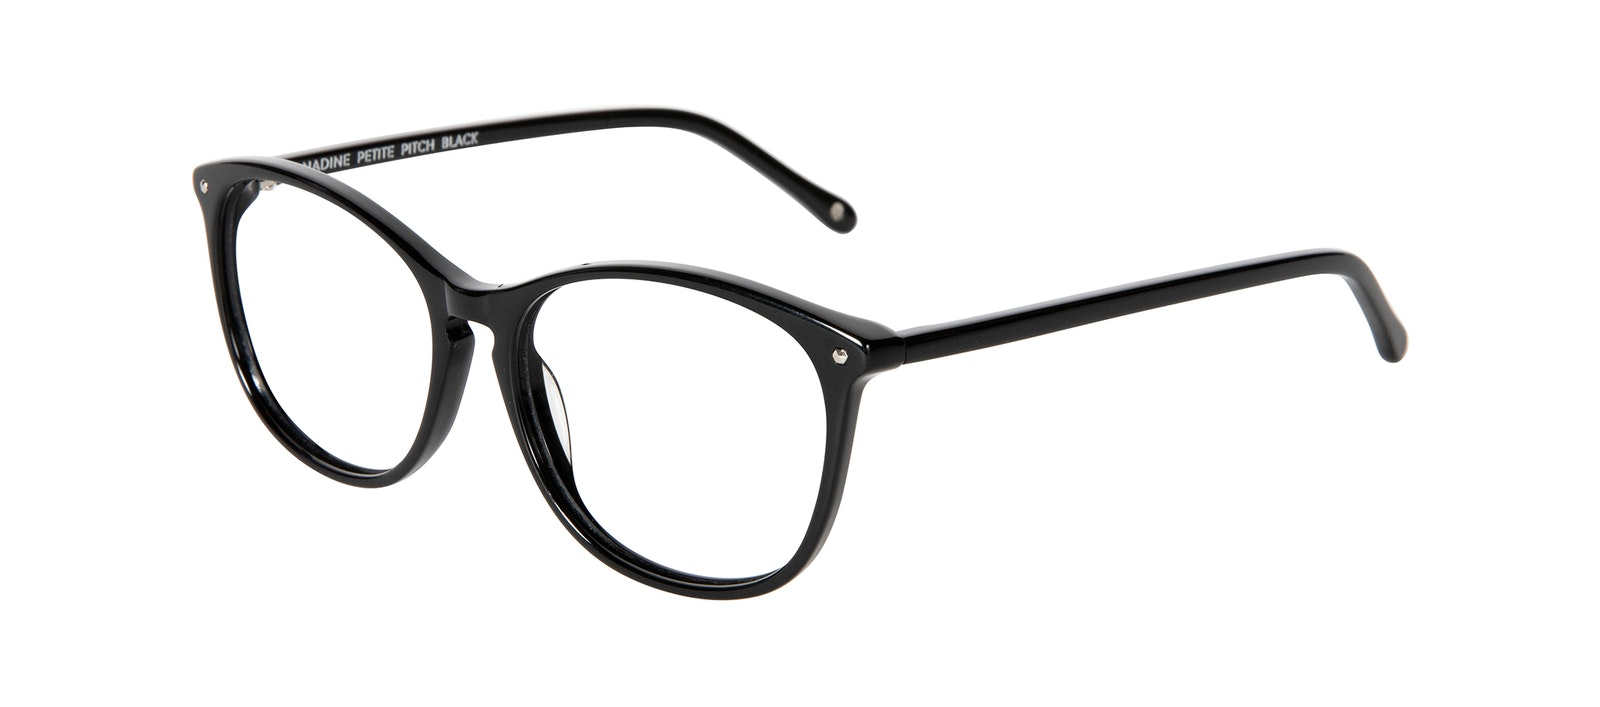 Affordable Fashion Glasses Round Eyeglasses Women Nadine Petite Pitch Black Tilt